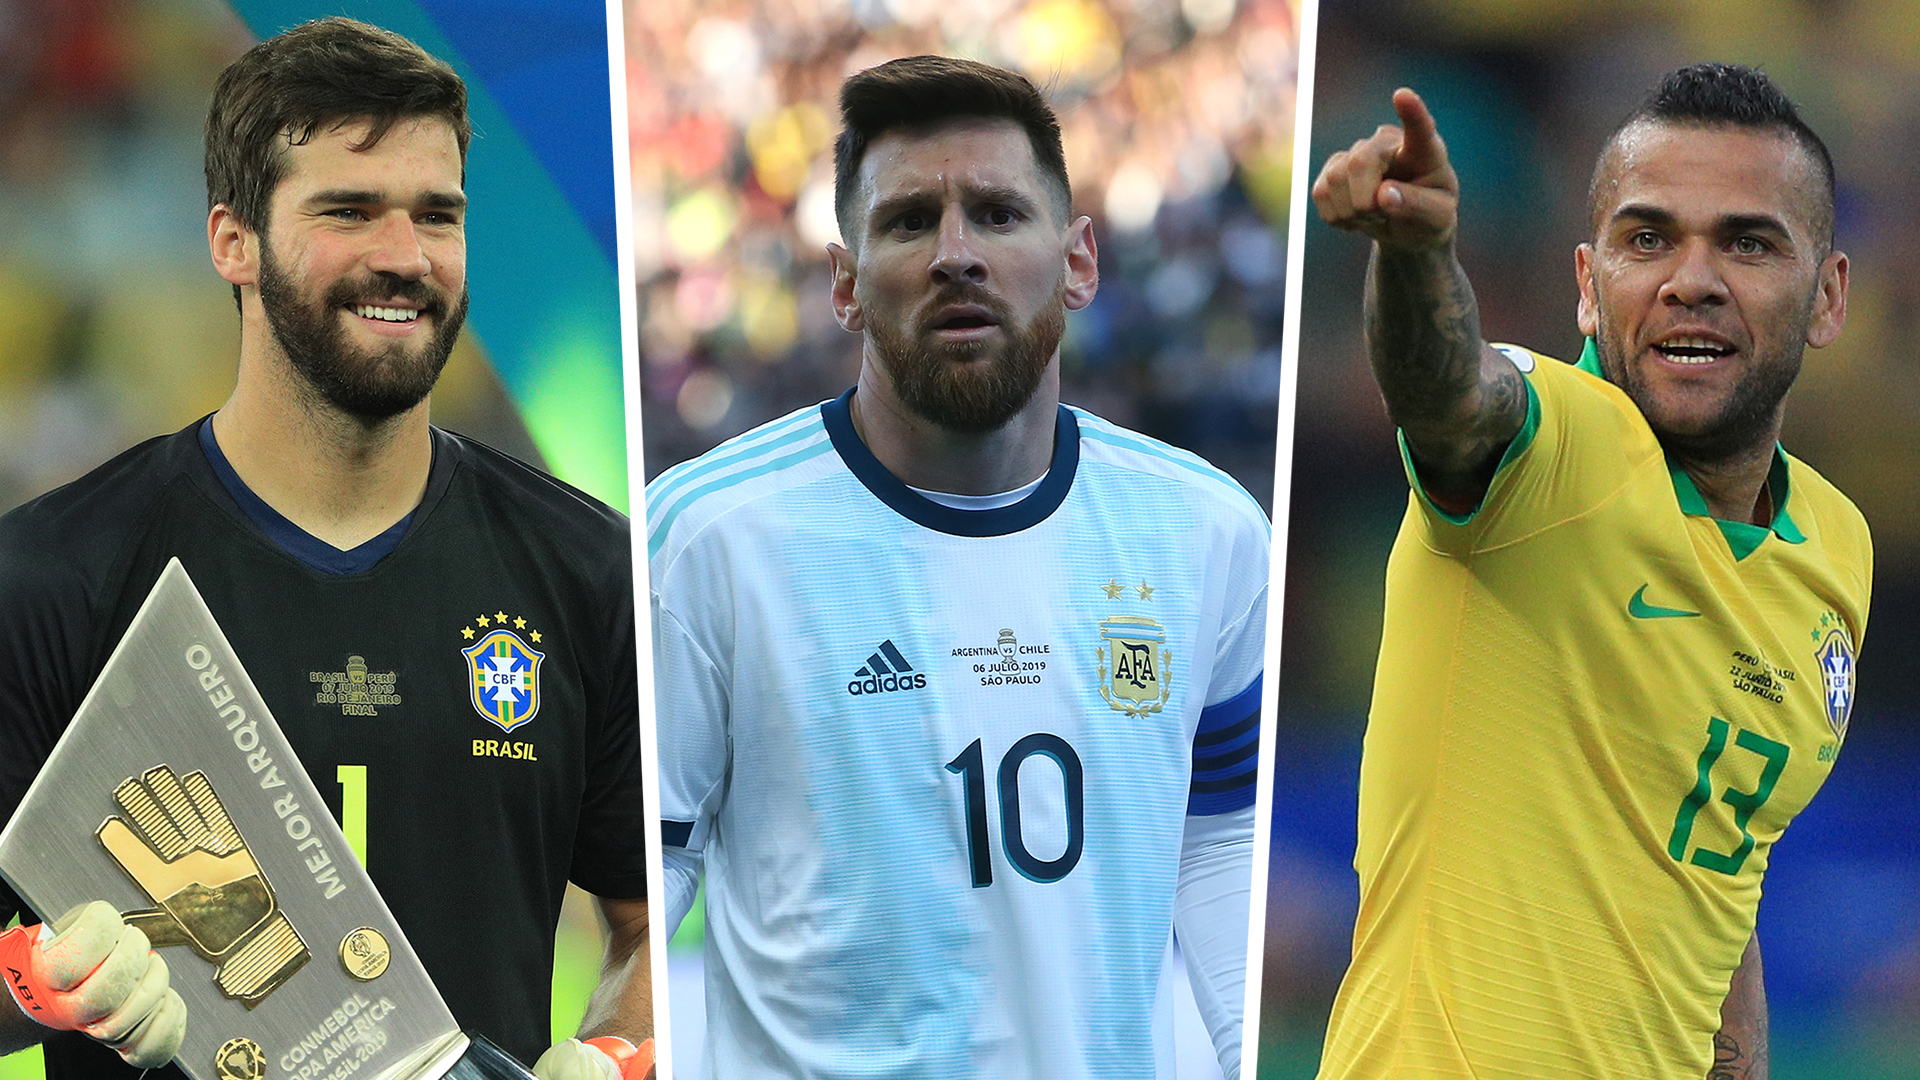 Messi missing as Alisson and Alves headline Copa America Team of the Tournament